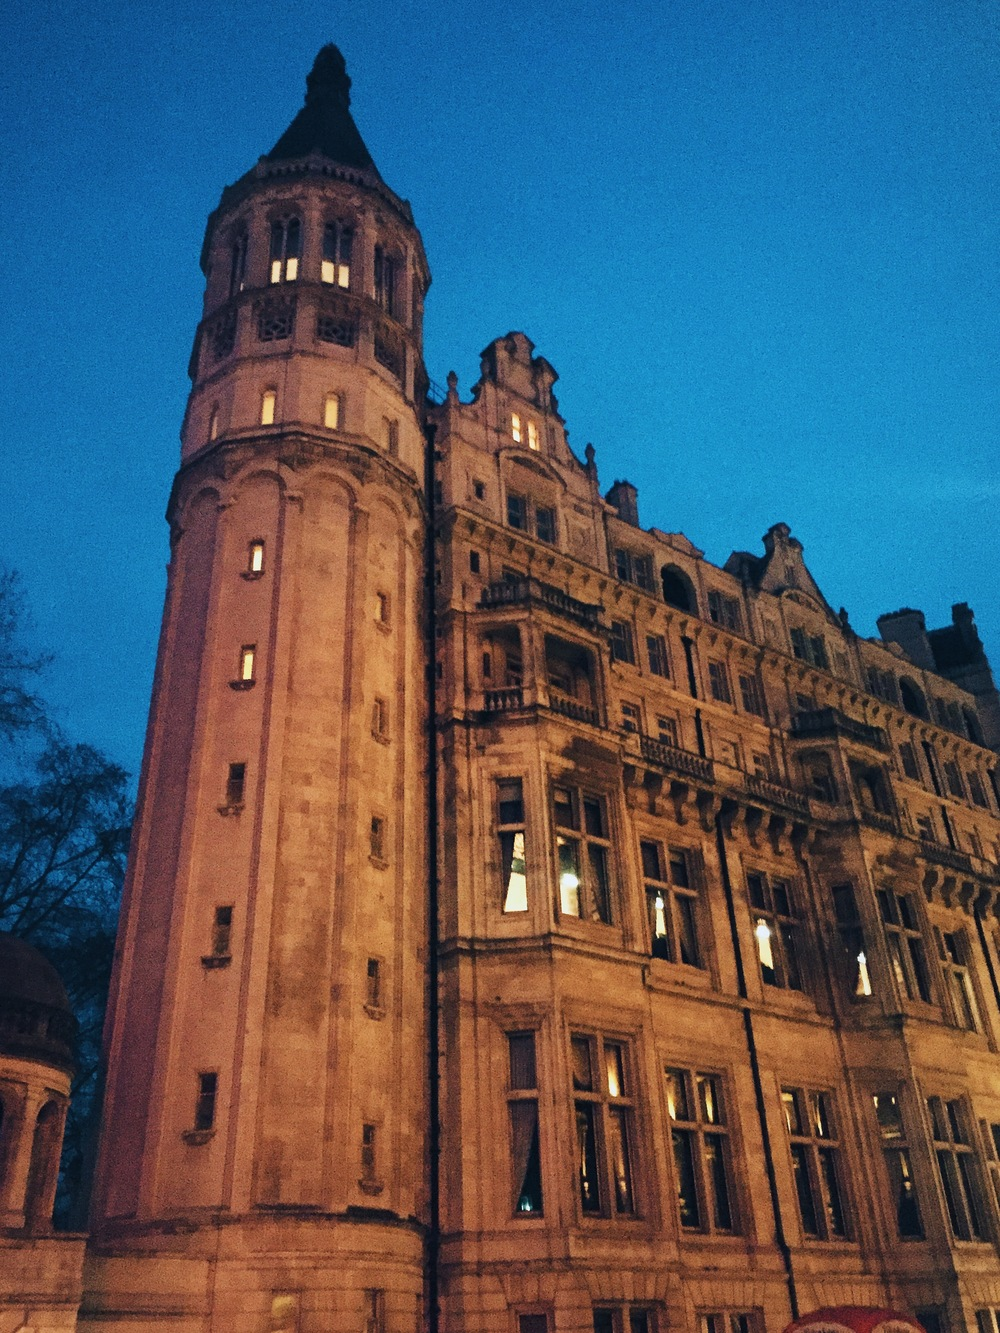 Just another old building...Embankment.